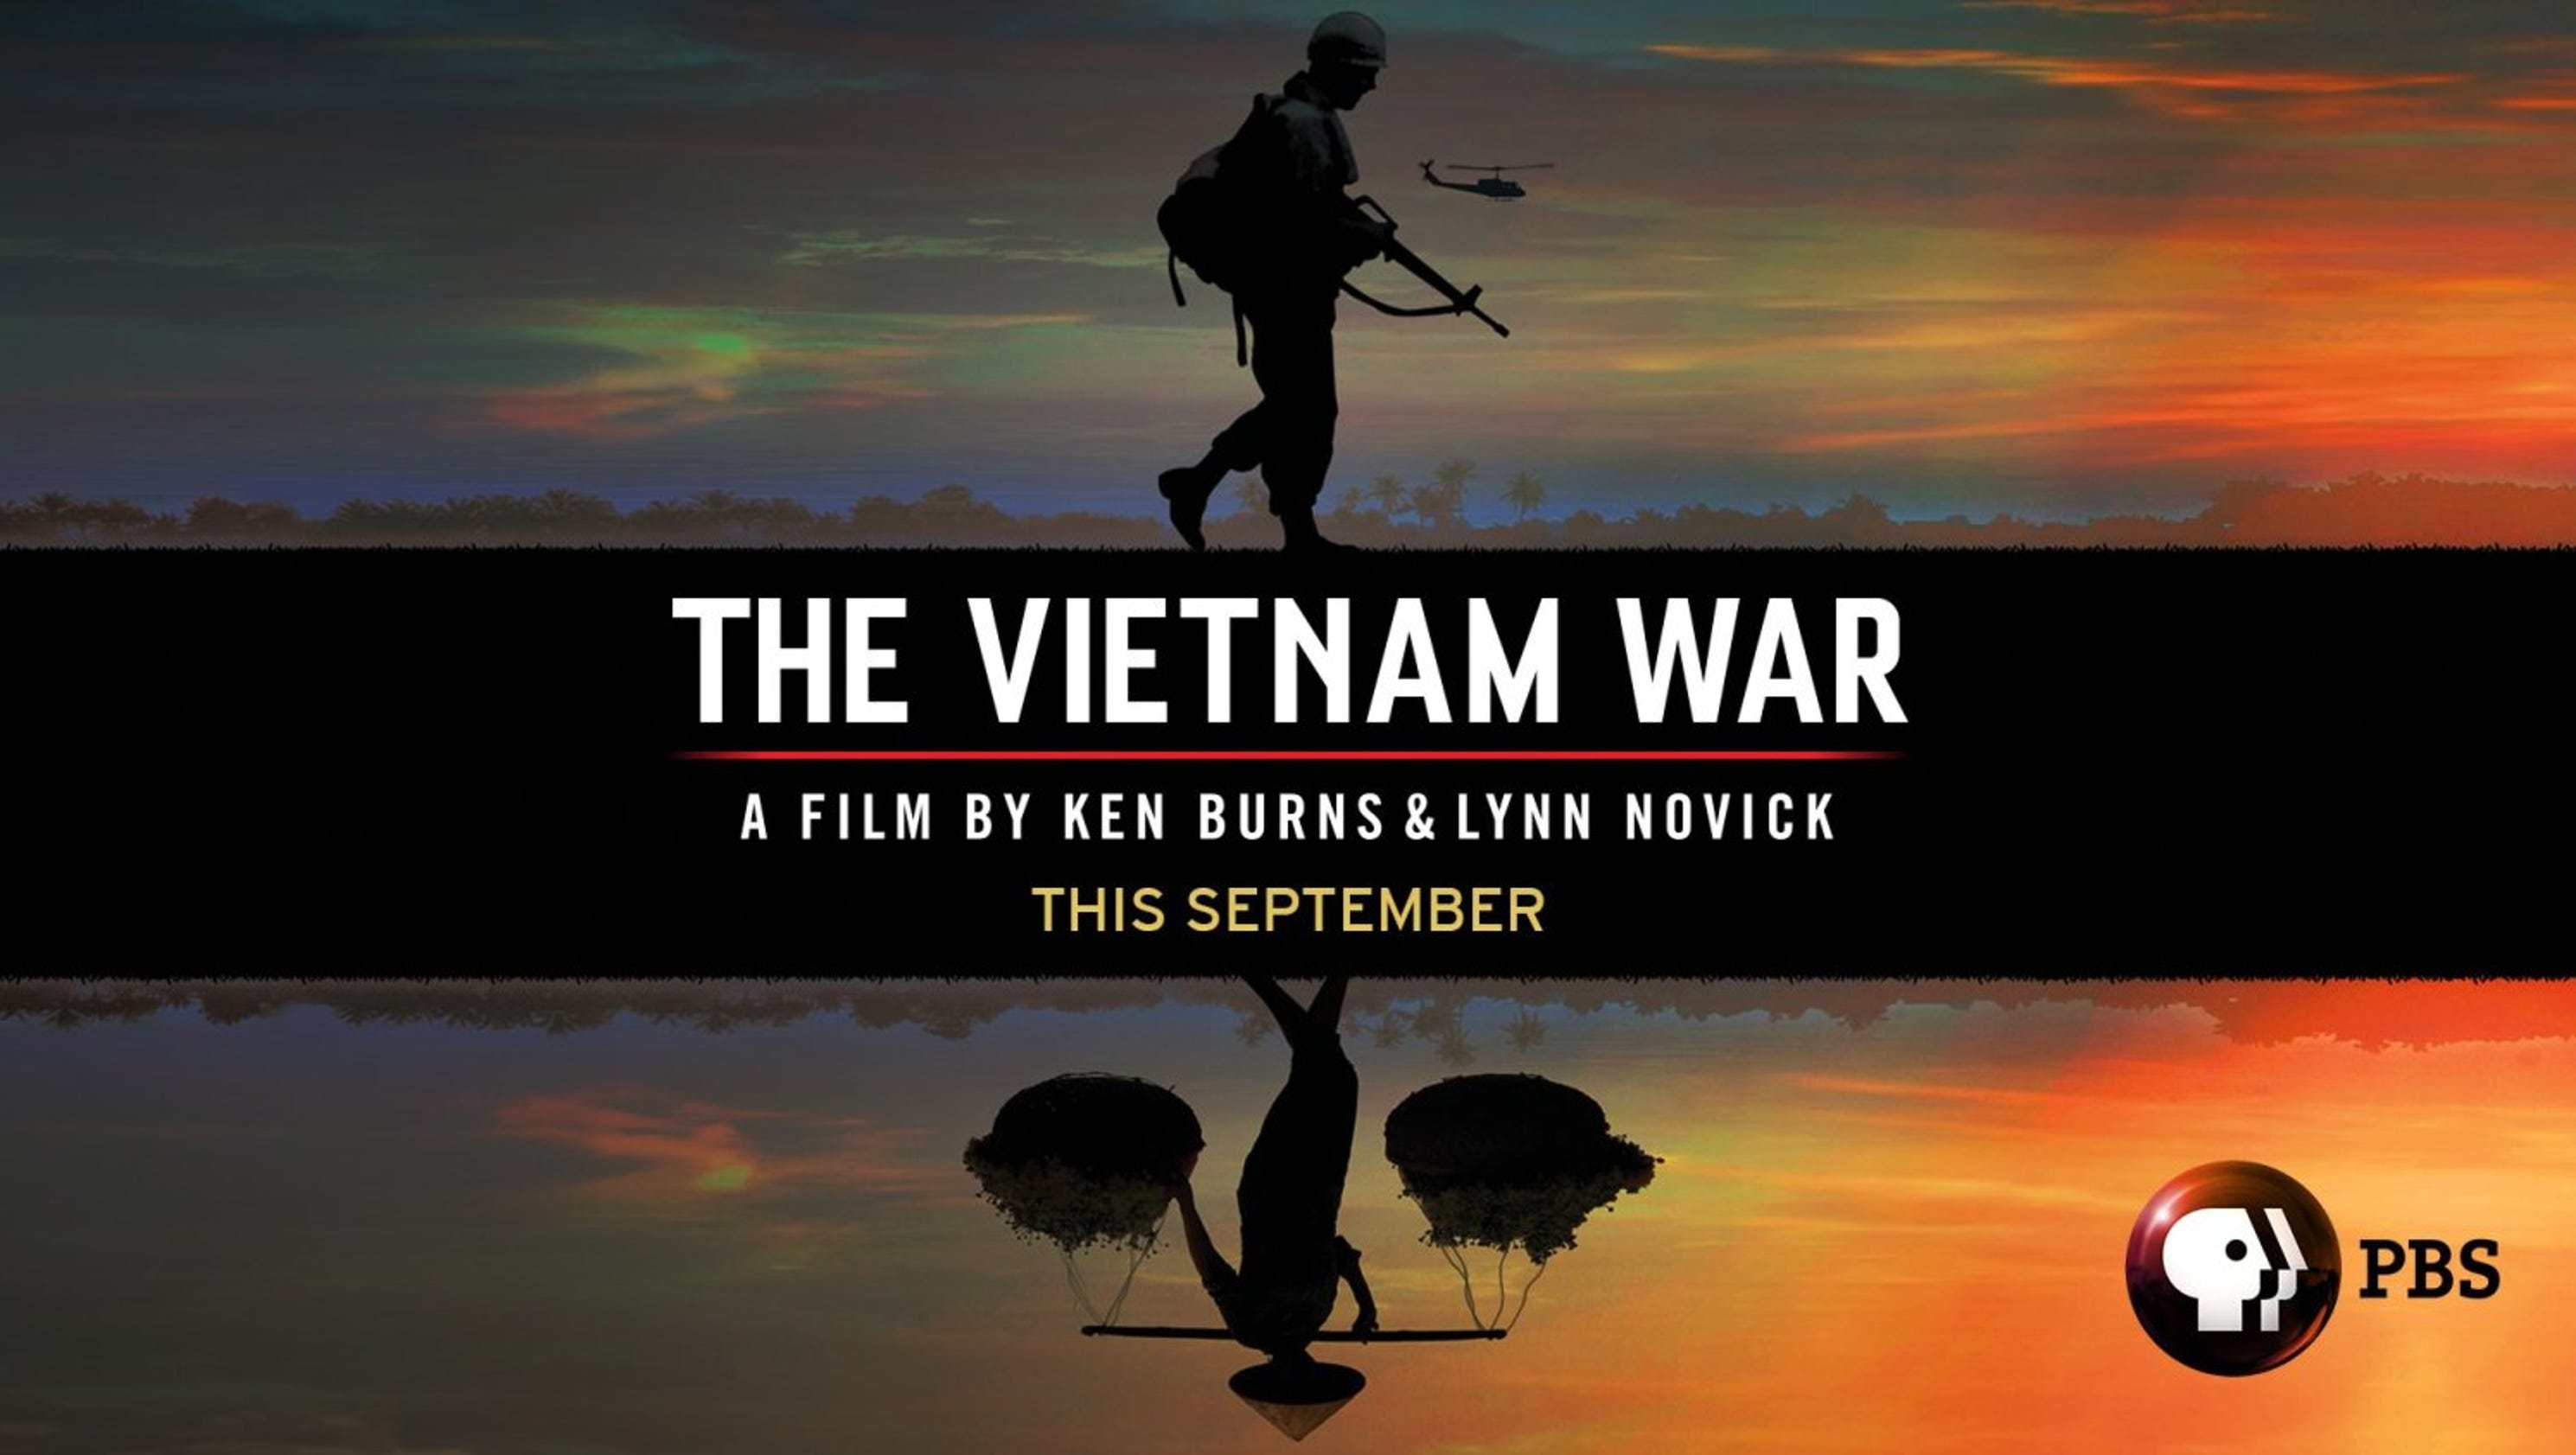 account of the vietnam war the struggle for vietnam The struggle between french colonial forces and native vietnamese citizens supported by chinese communists was one of the root causes of the vietnam war united states forces entered the conflict in.